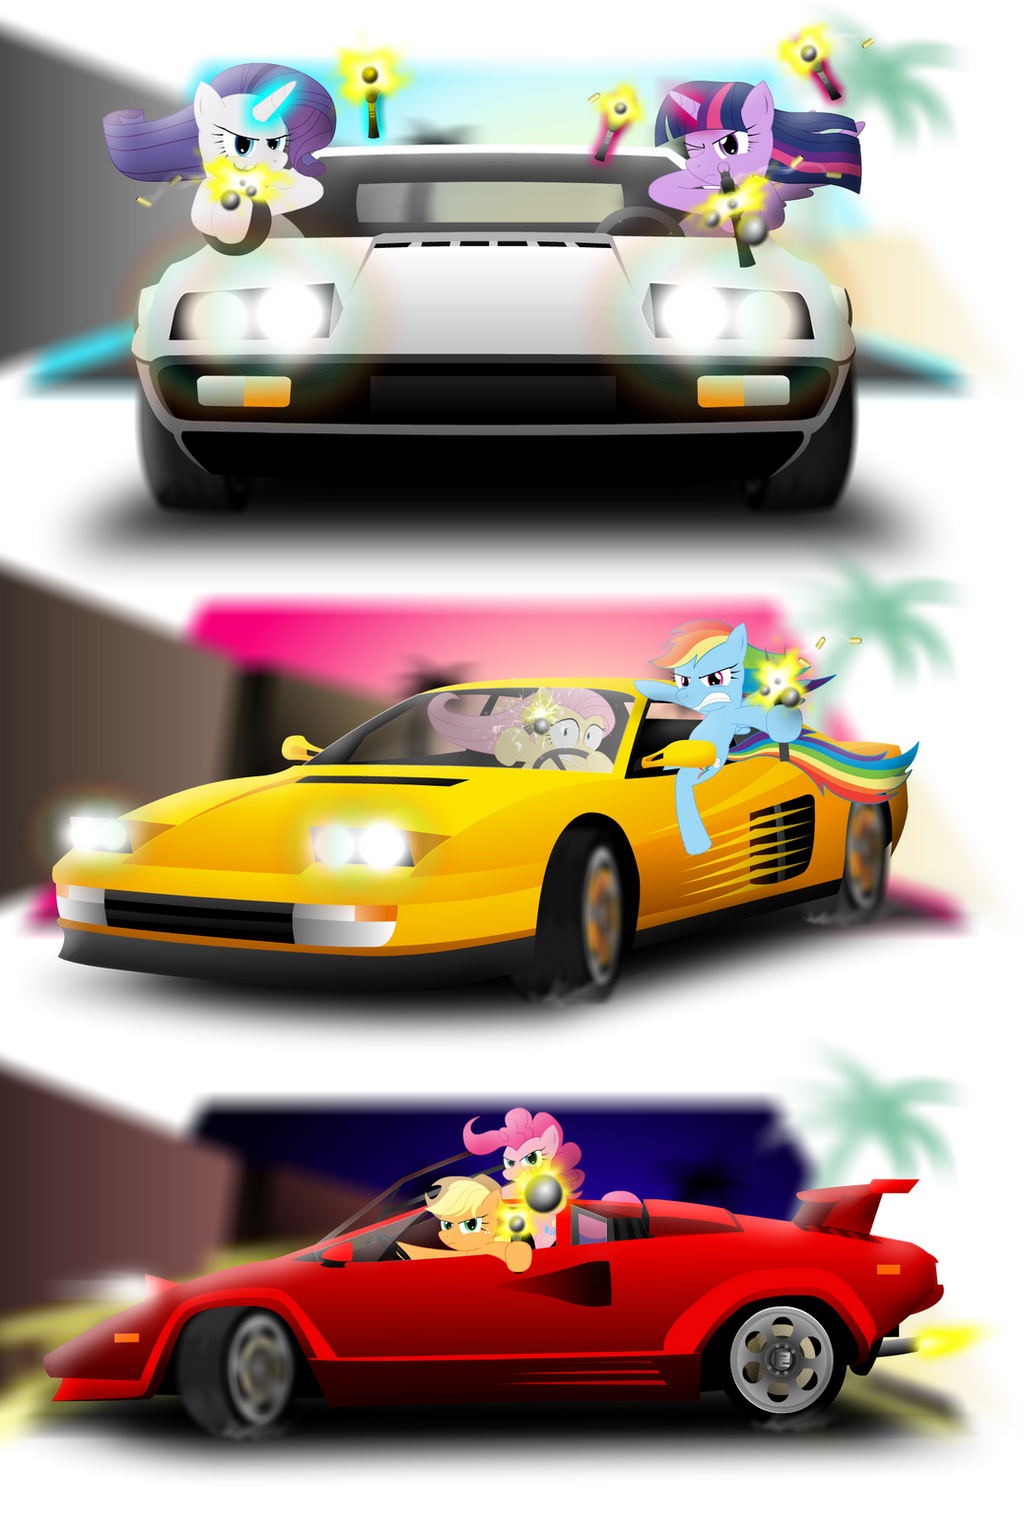 Ponies, cars, and pop-up headlights by GoneIn10Seconds